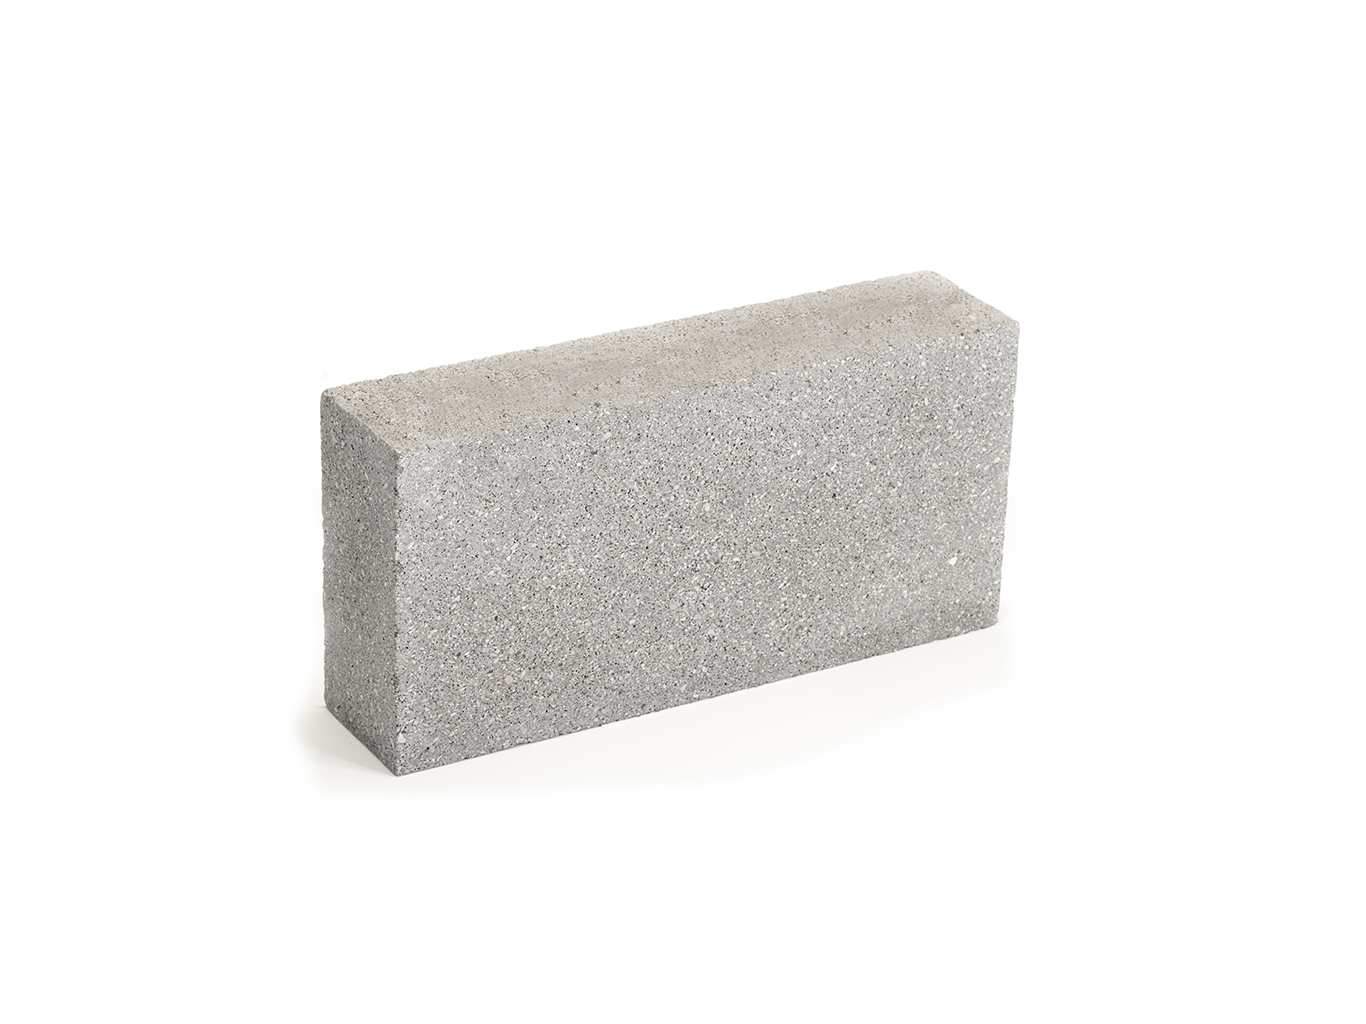 SIZED-Dover Grey Groundface Top.jpg